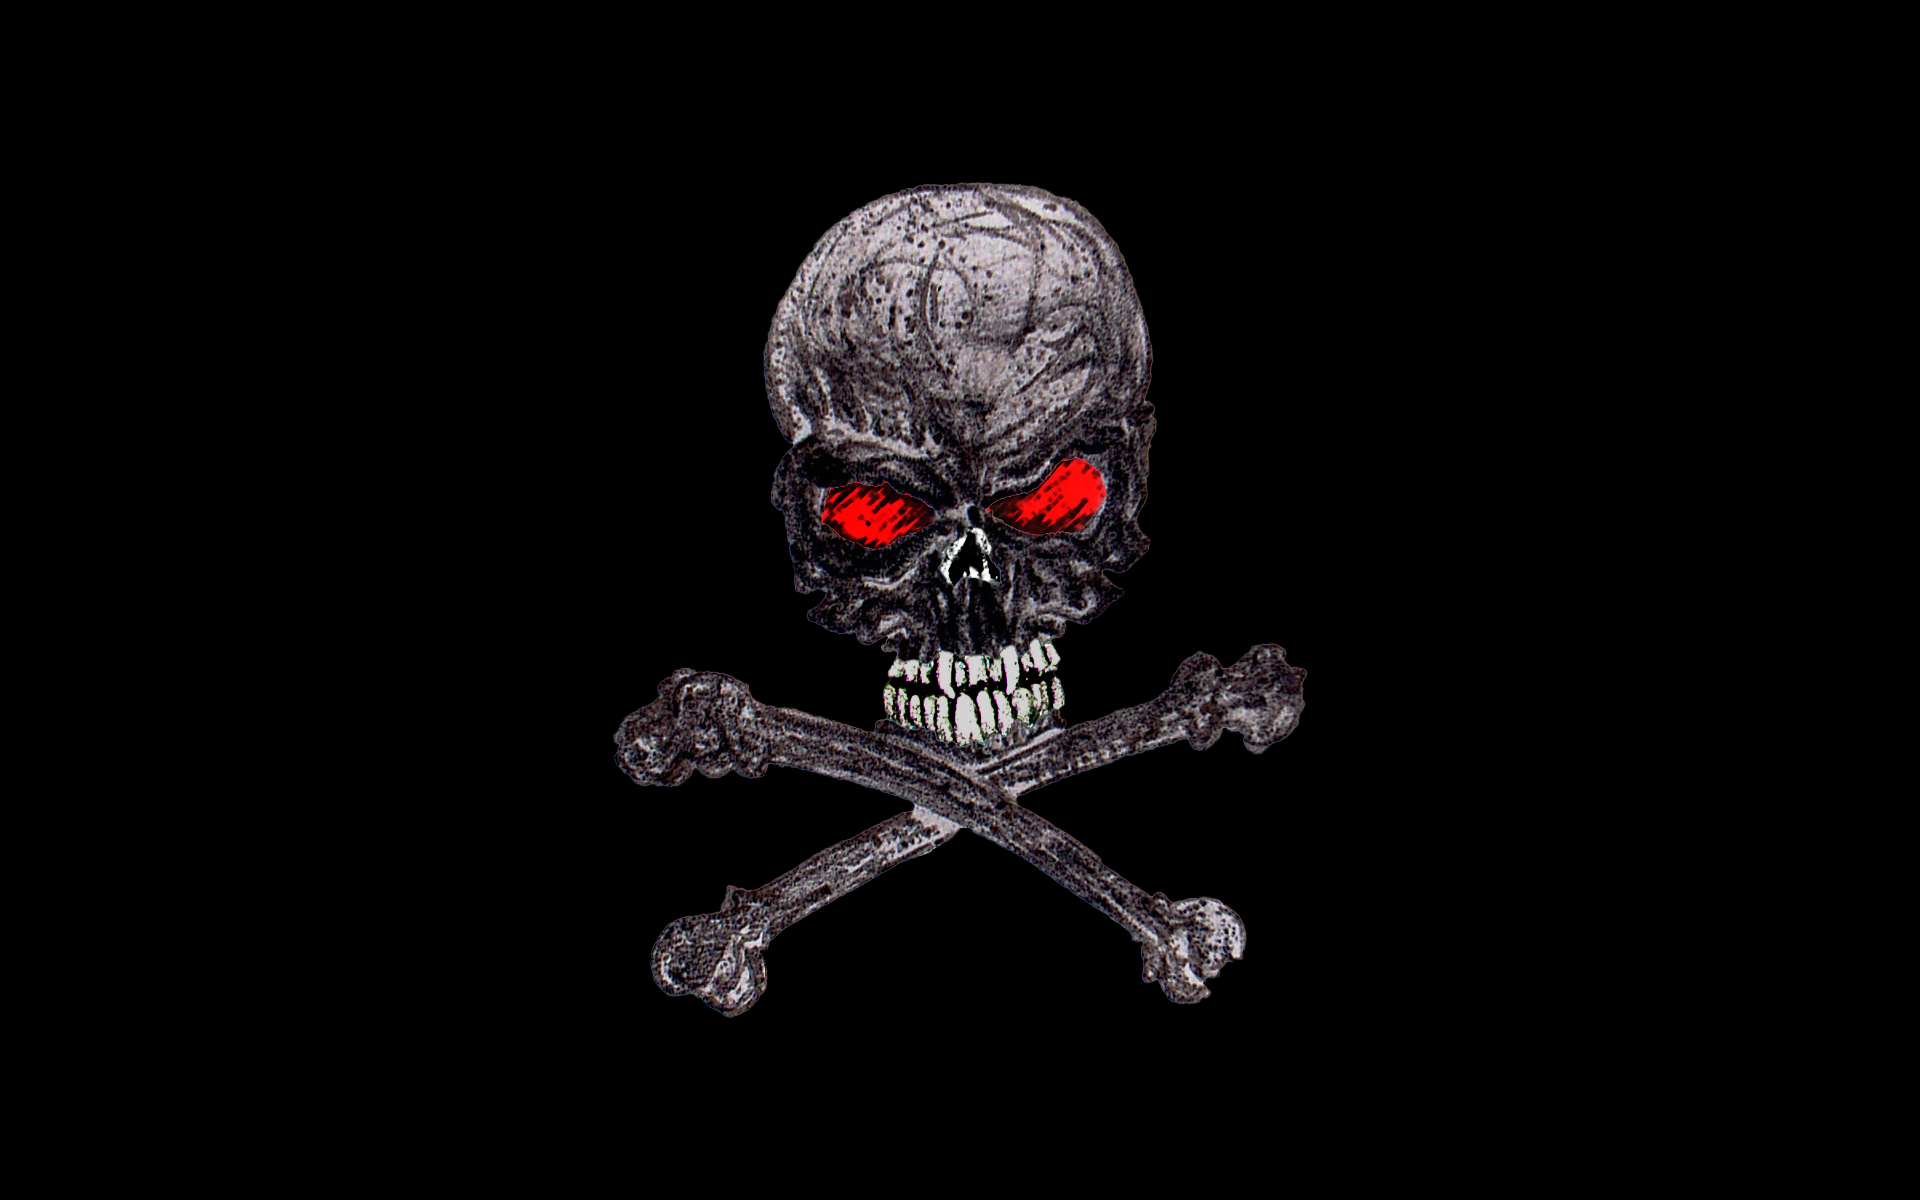 Hd Skull wallpaper   229910 1920x1200